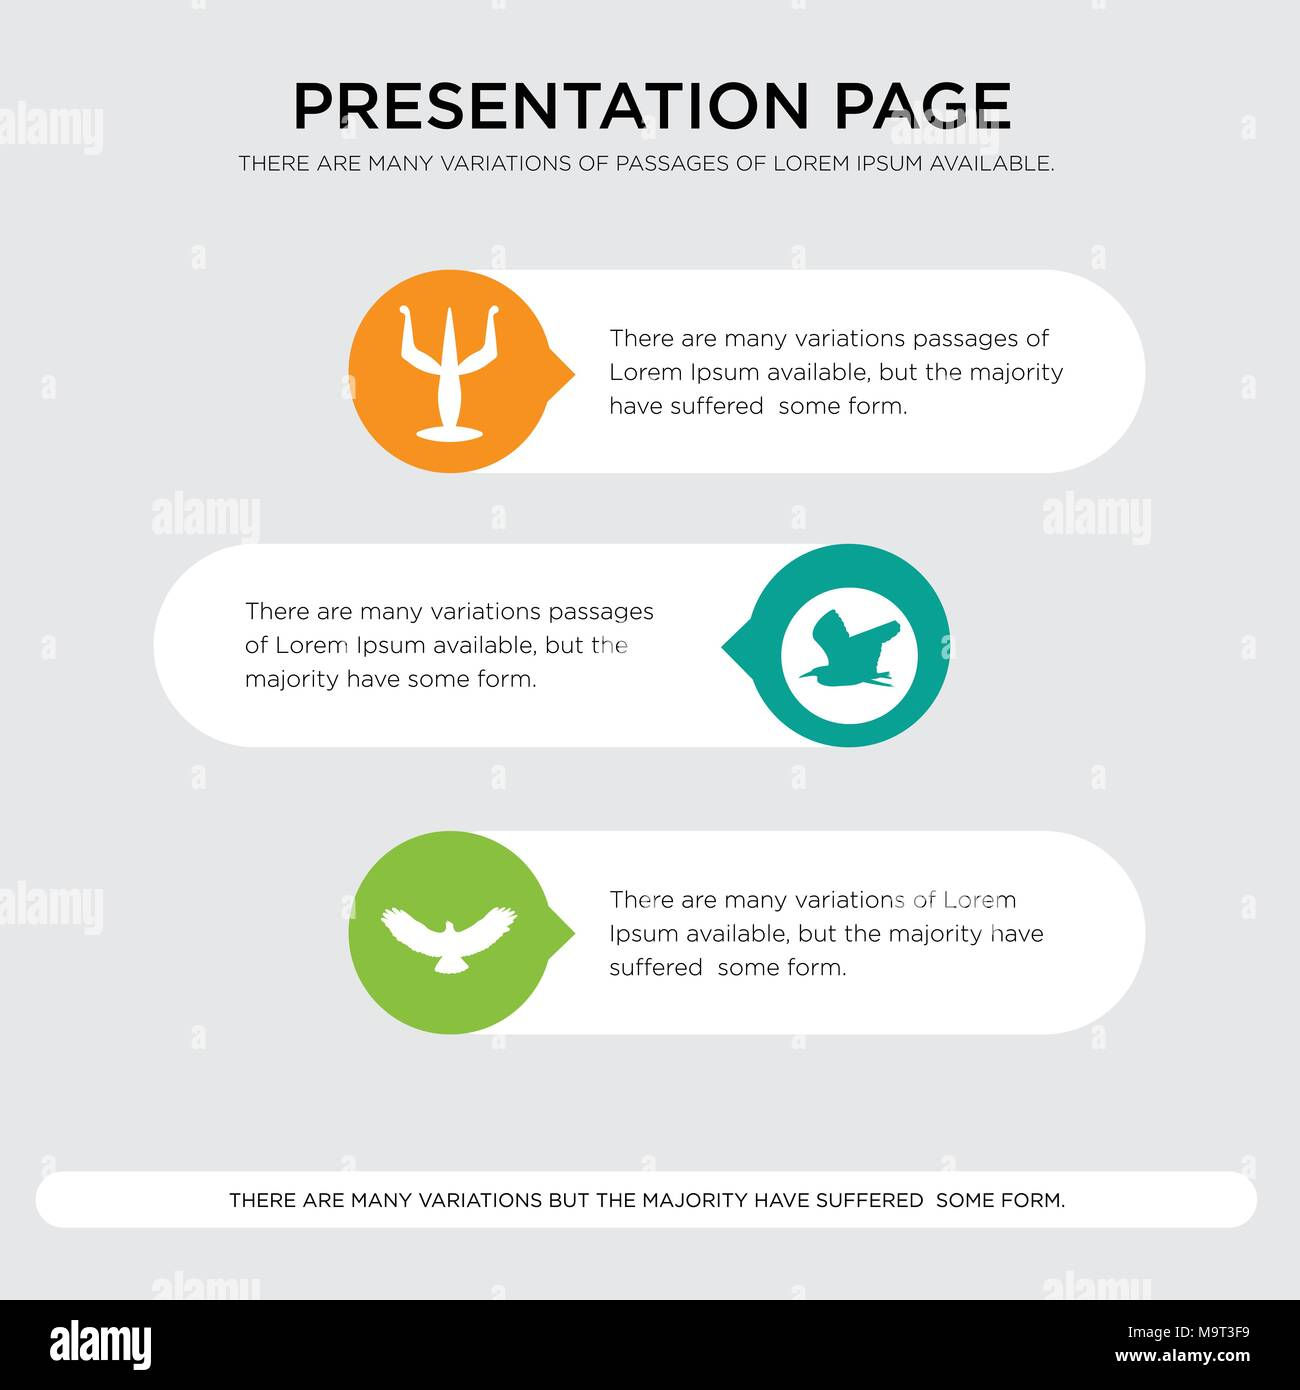 hawk, heron, psi presentation design template in orange, green, yellow colors with horizontal and rounded shapes - Stock Image